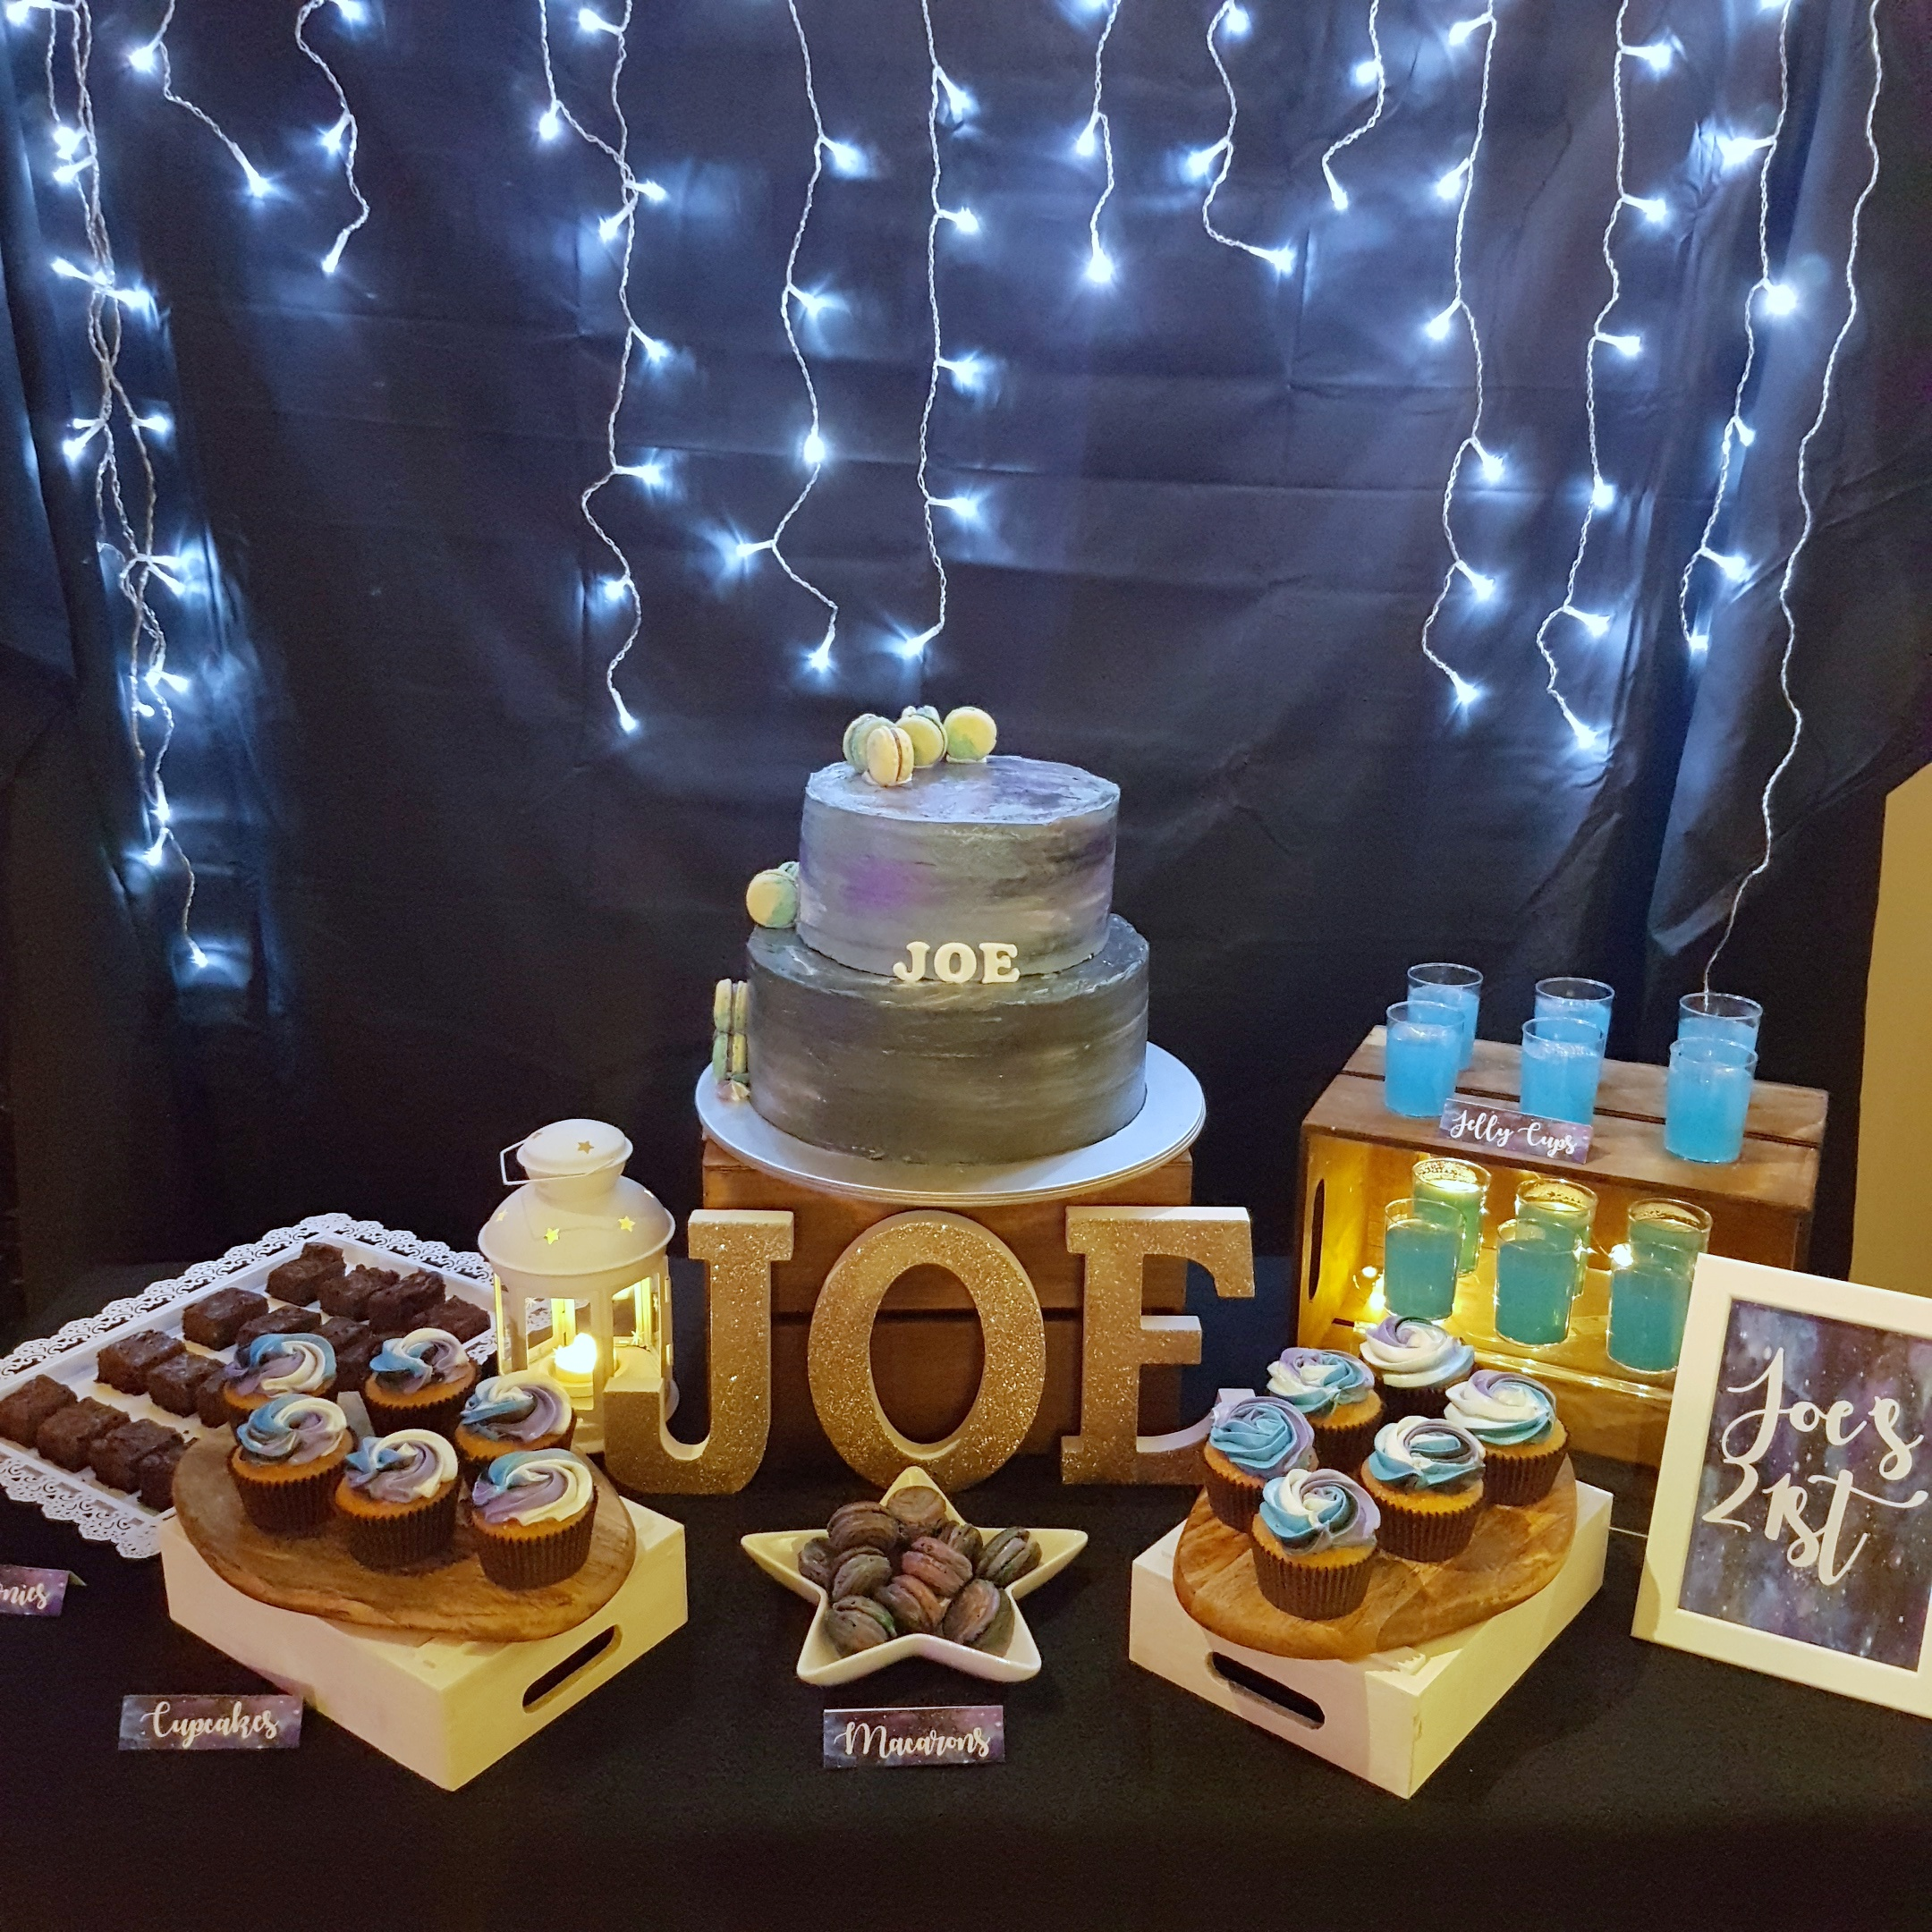 Galaxy dessert table by The Baking Experiment